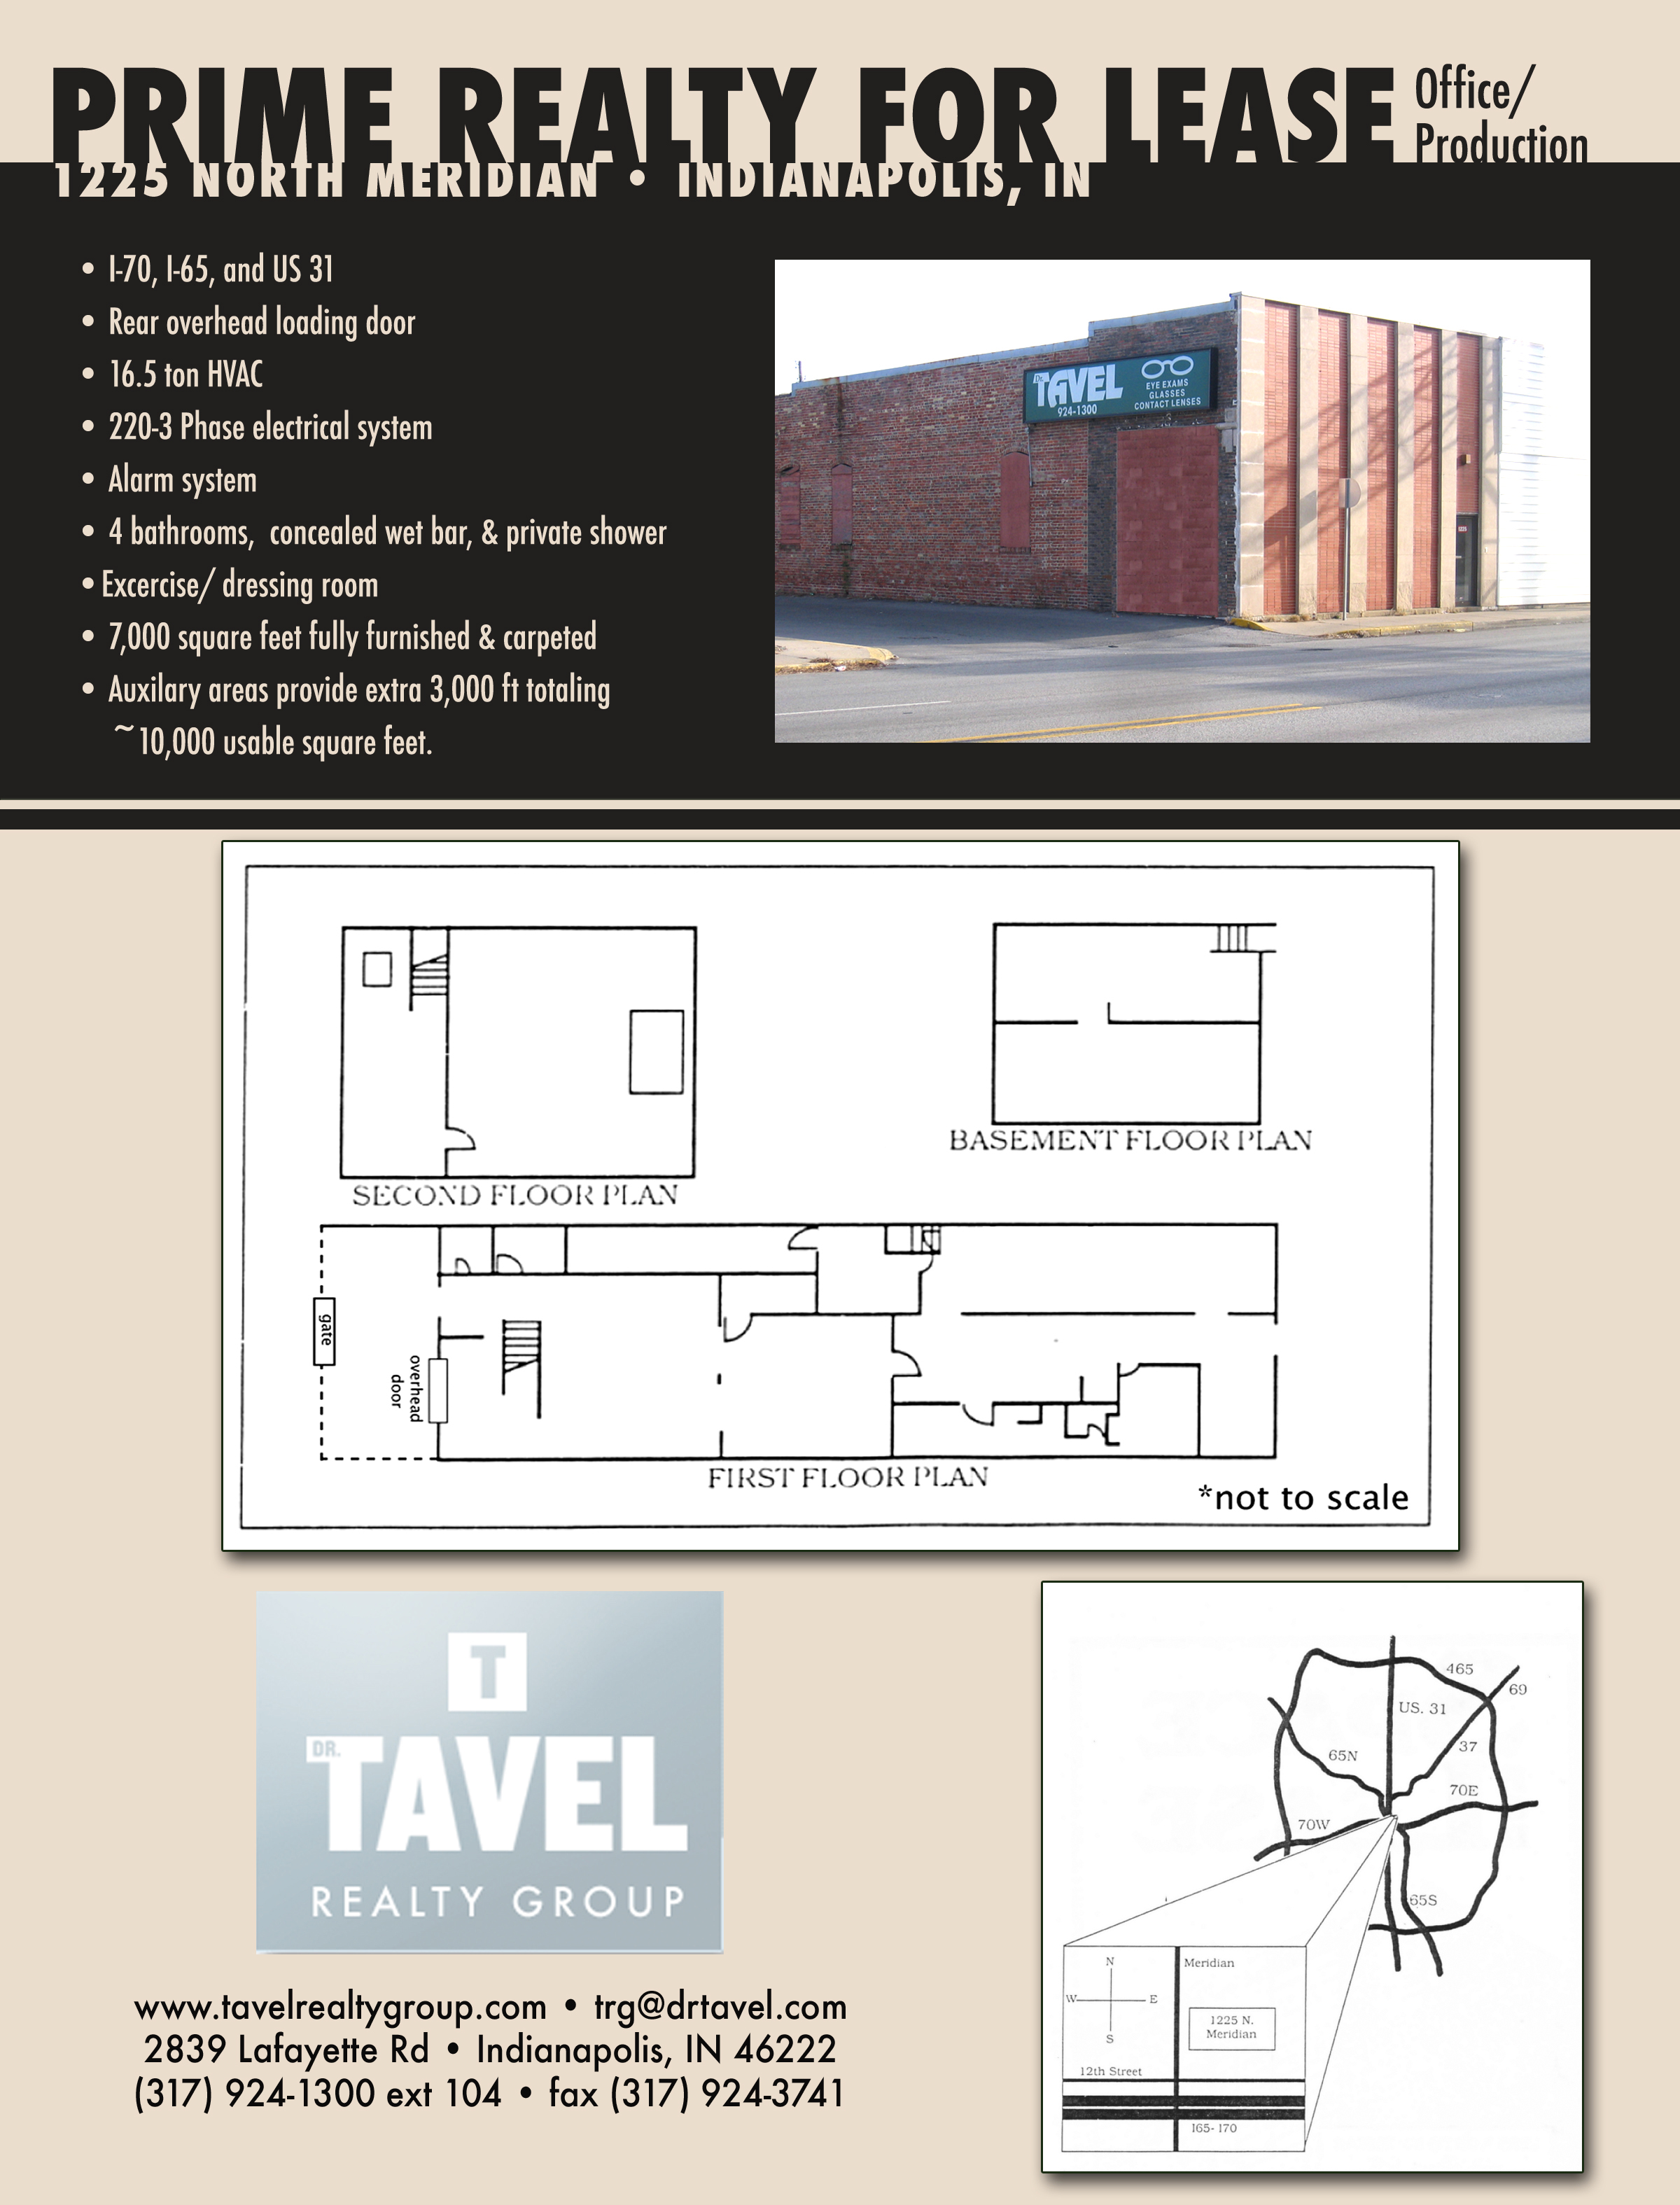 1225 N Meridian St Indianapolis In Tavel Realty Site